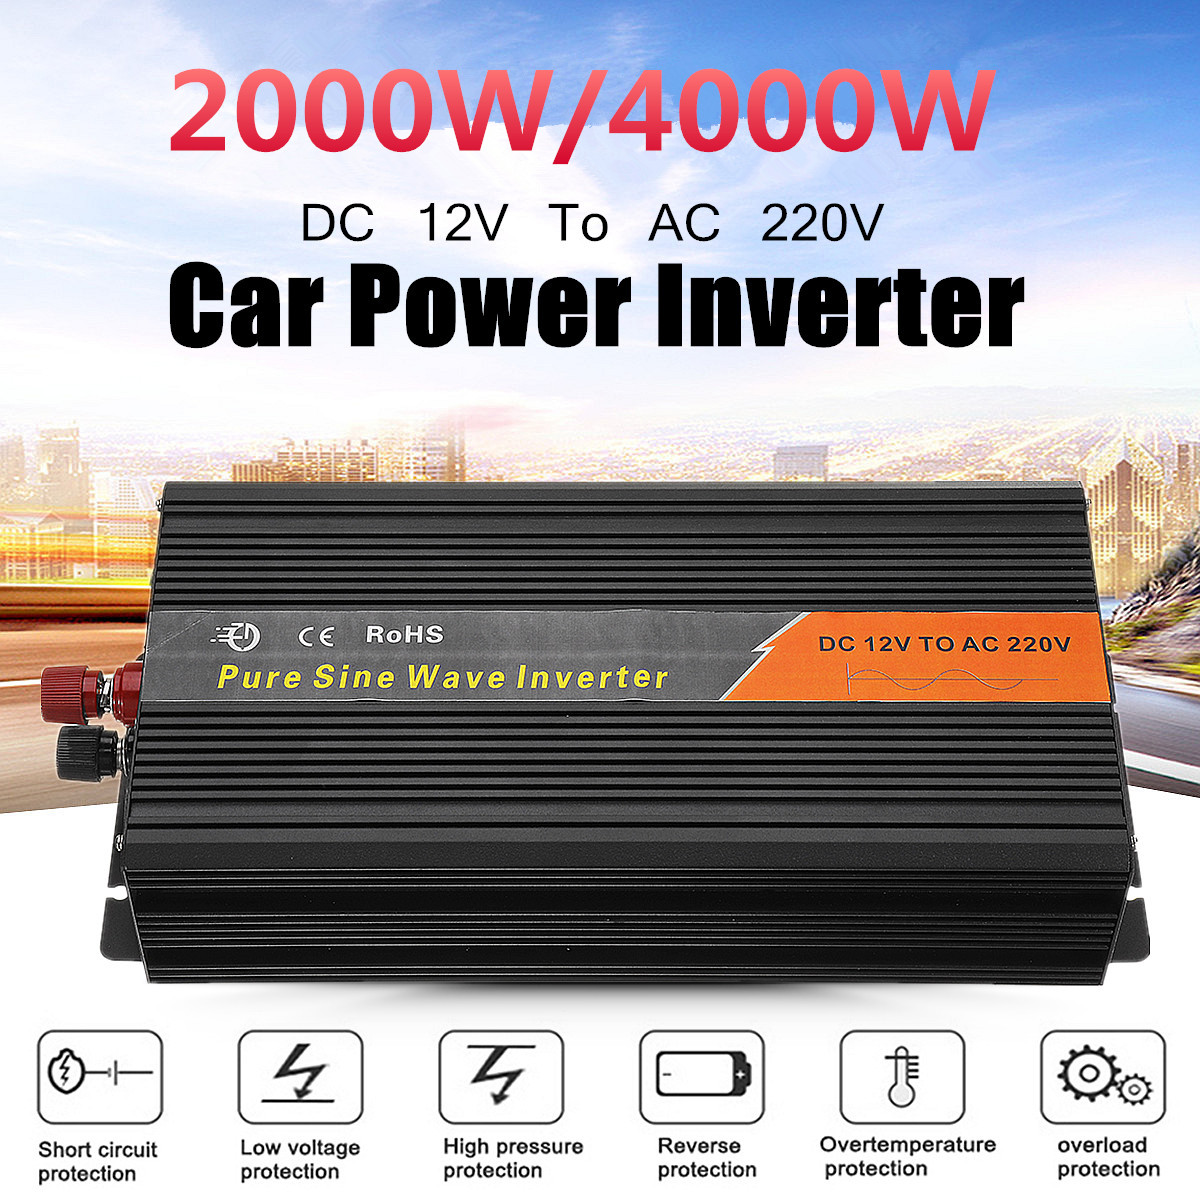 High Power Tbe Auto Car Pure Sine Wave Inverter 1000w Dc12v Circuit Diagram 2017 2018 Best Cars 2000 4000w Dc 12v To Ac 220v Charger Converter